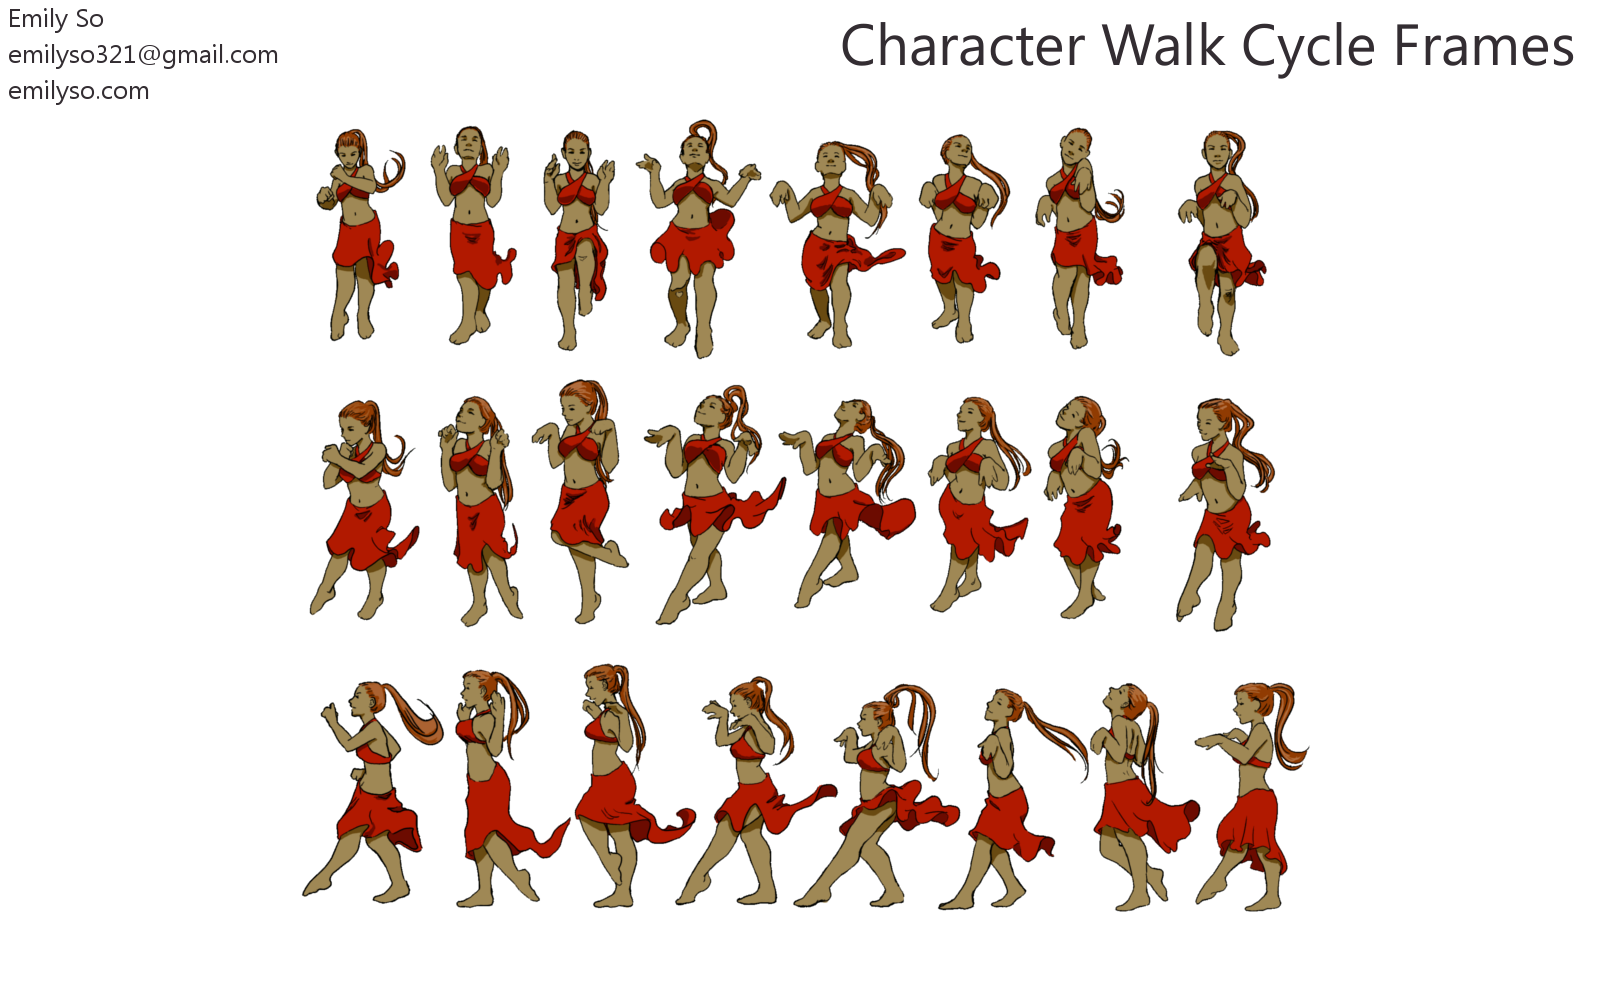 Dancer animation frames | Emily So